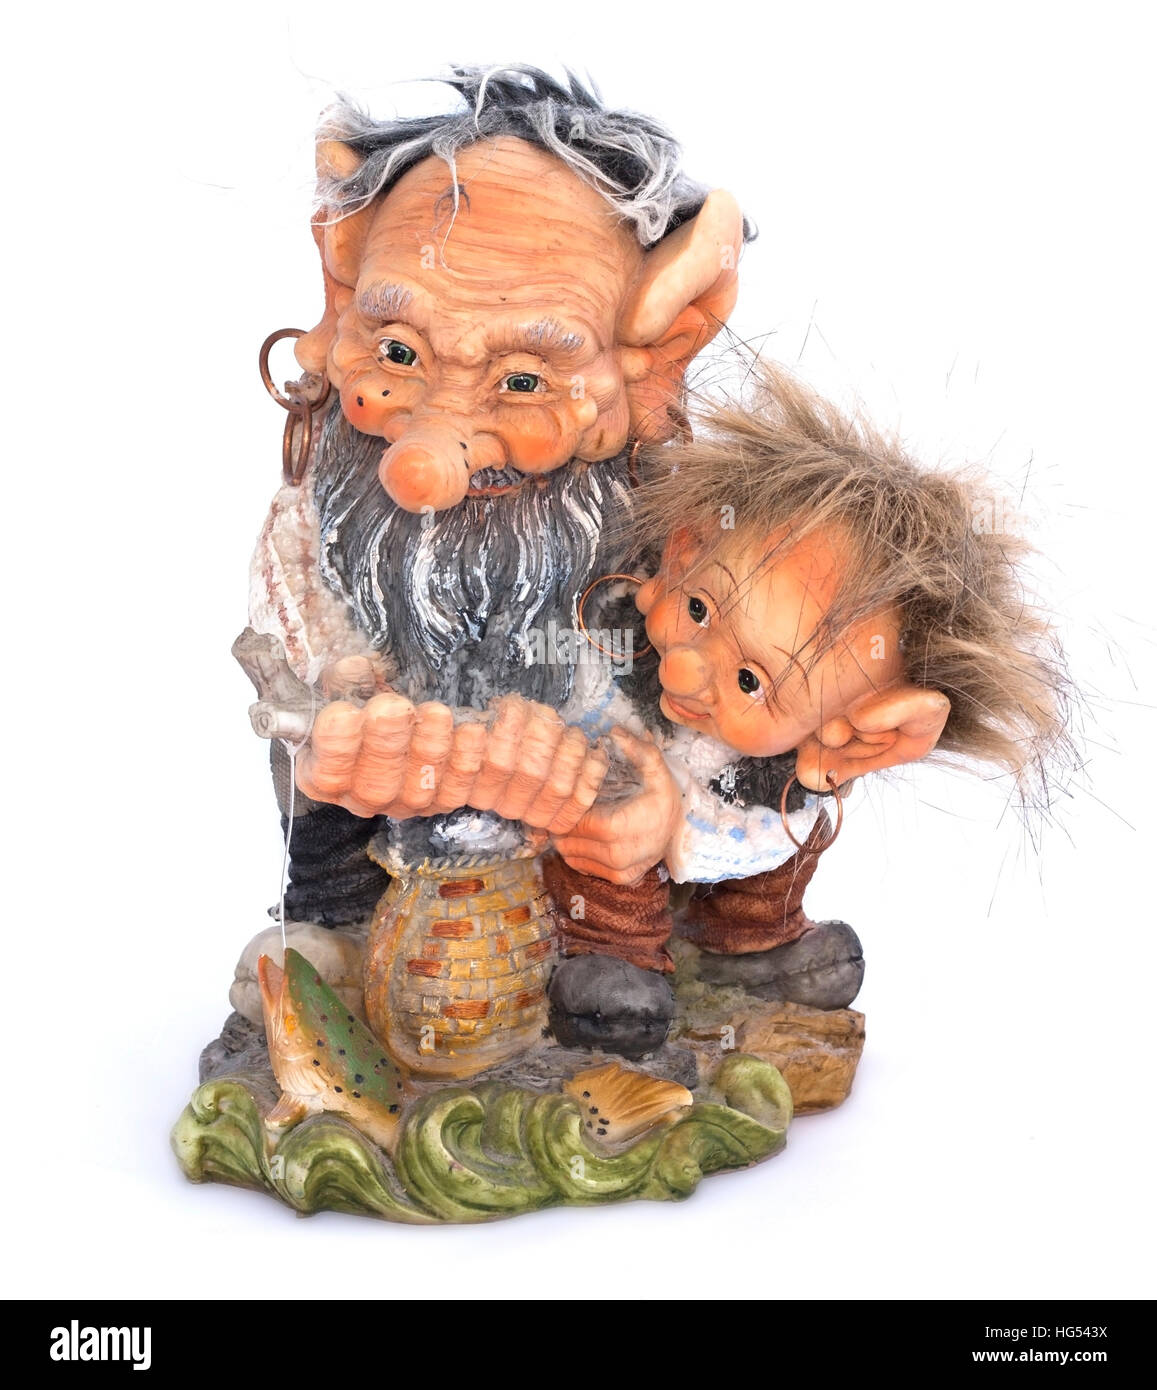 Two fisher troll with fishing rod figurine on a white background - Stock Image